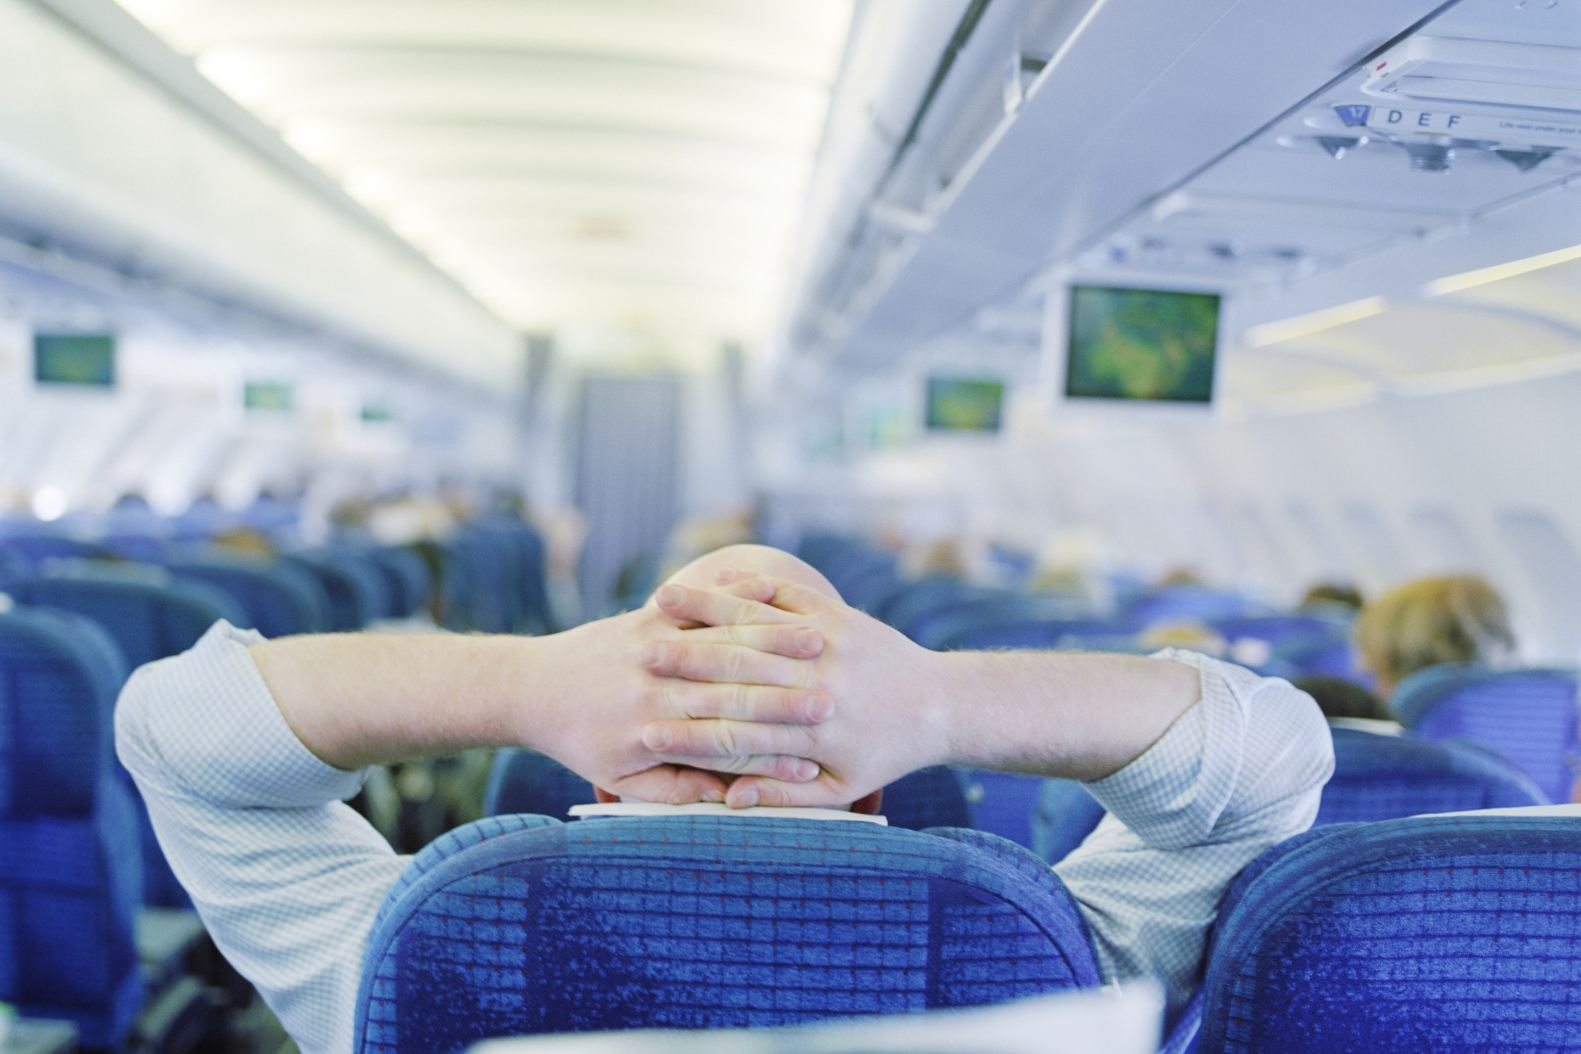 Passenger relaxing on airplane